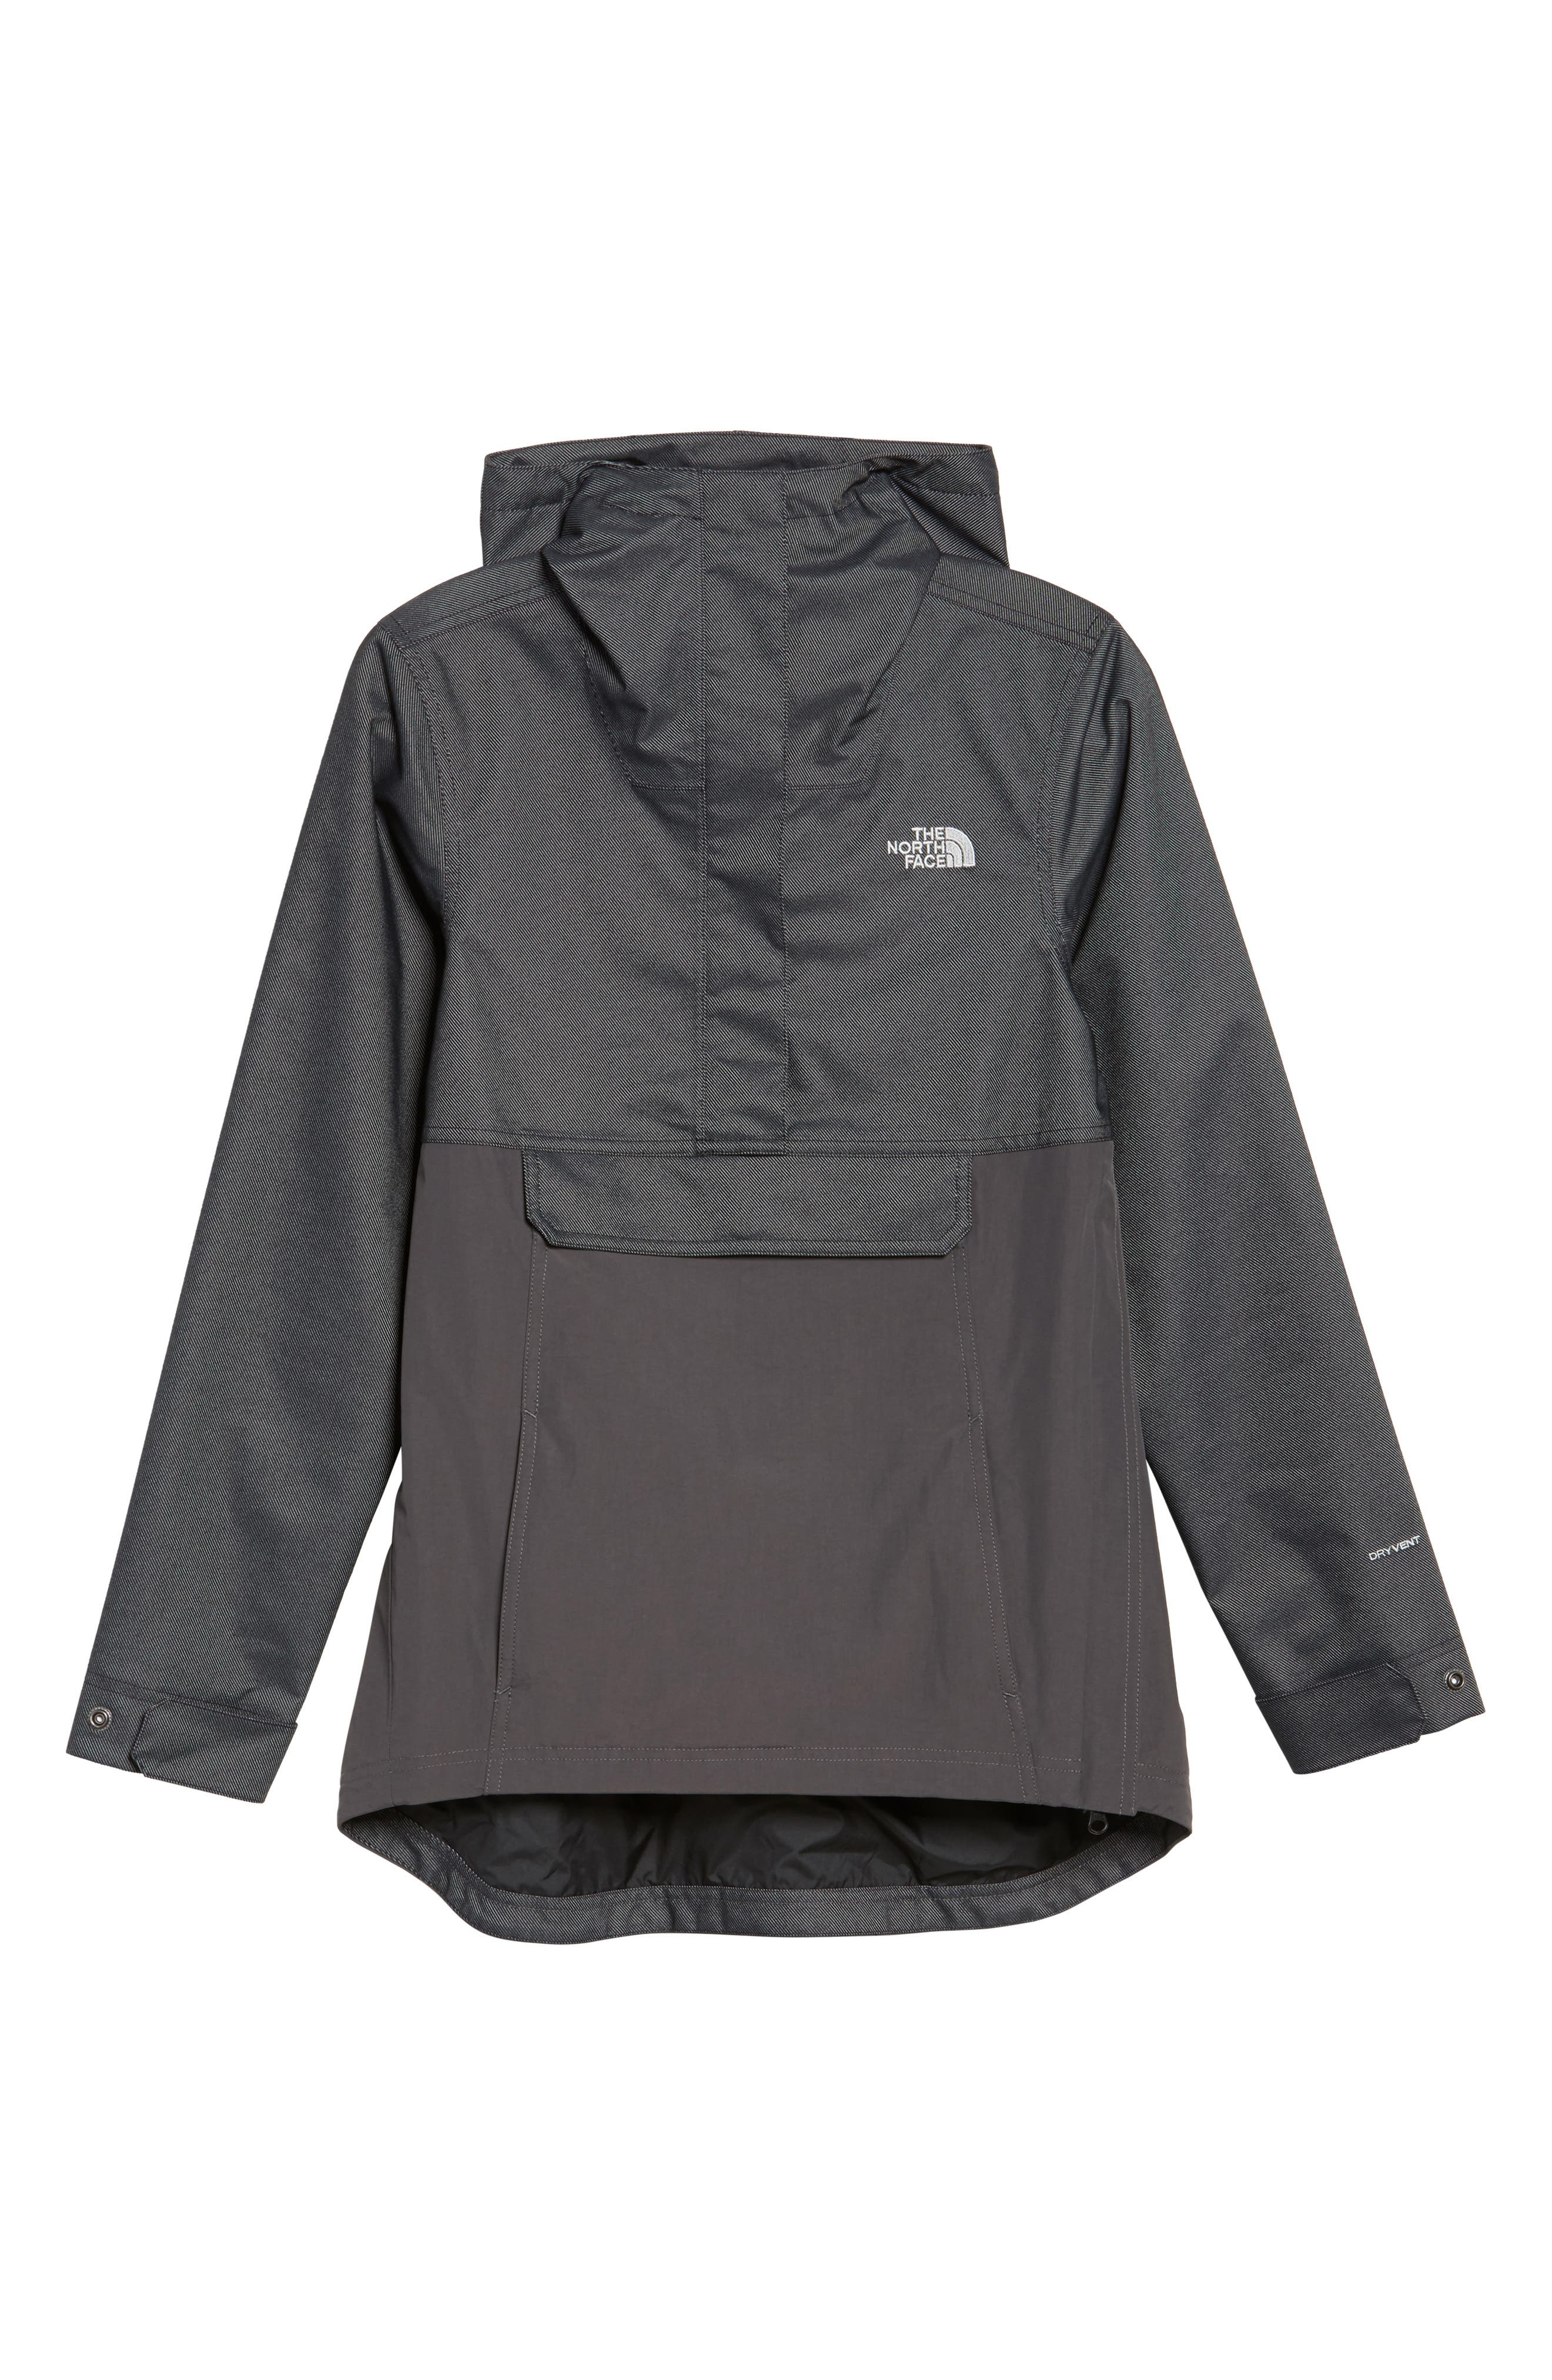 clearance the north face recco jacket nordstrom jewelry ae00a 2d786 rh fixcustard com